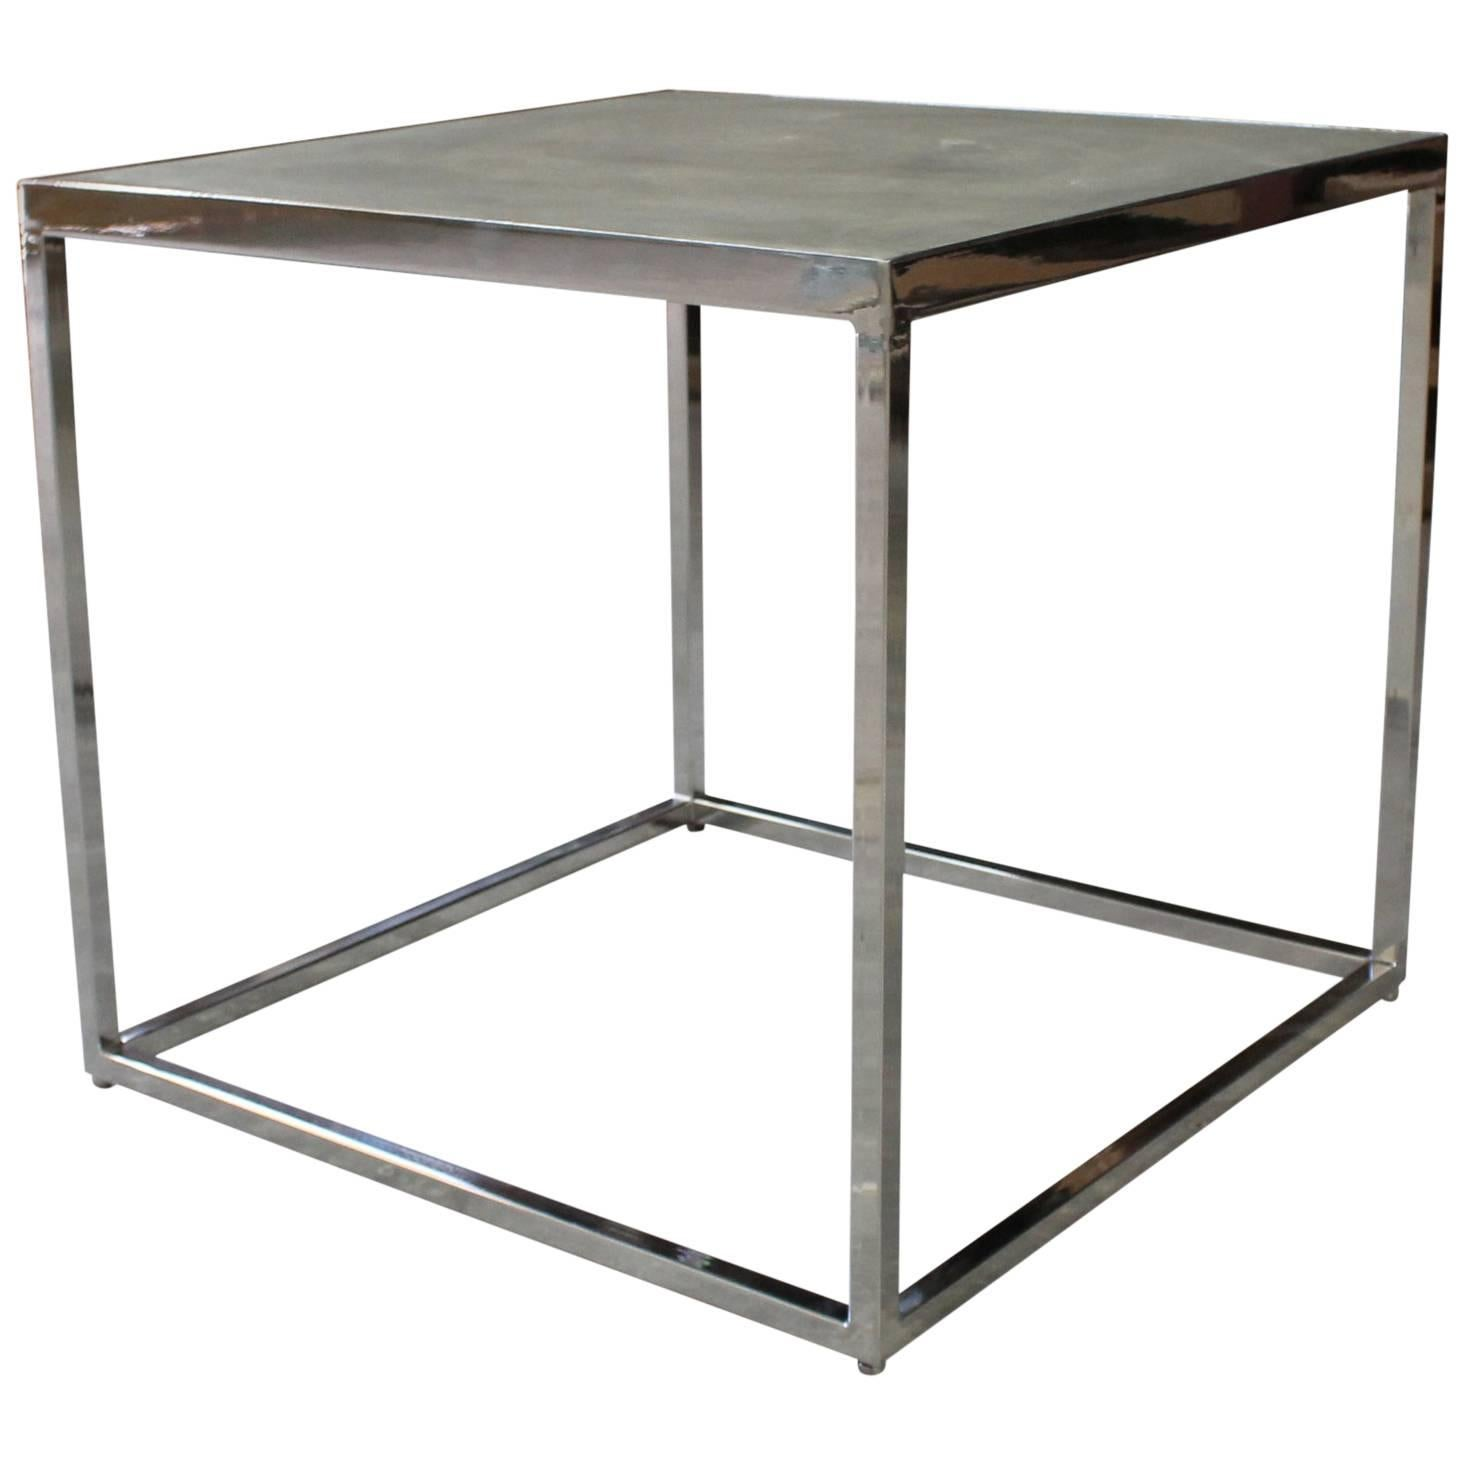 Polished Steel and Concrete Side Table by Costantini, Jesse